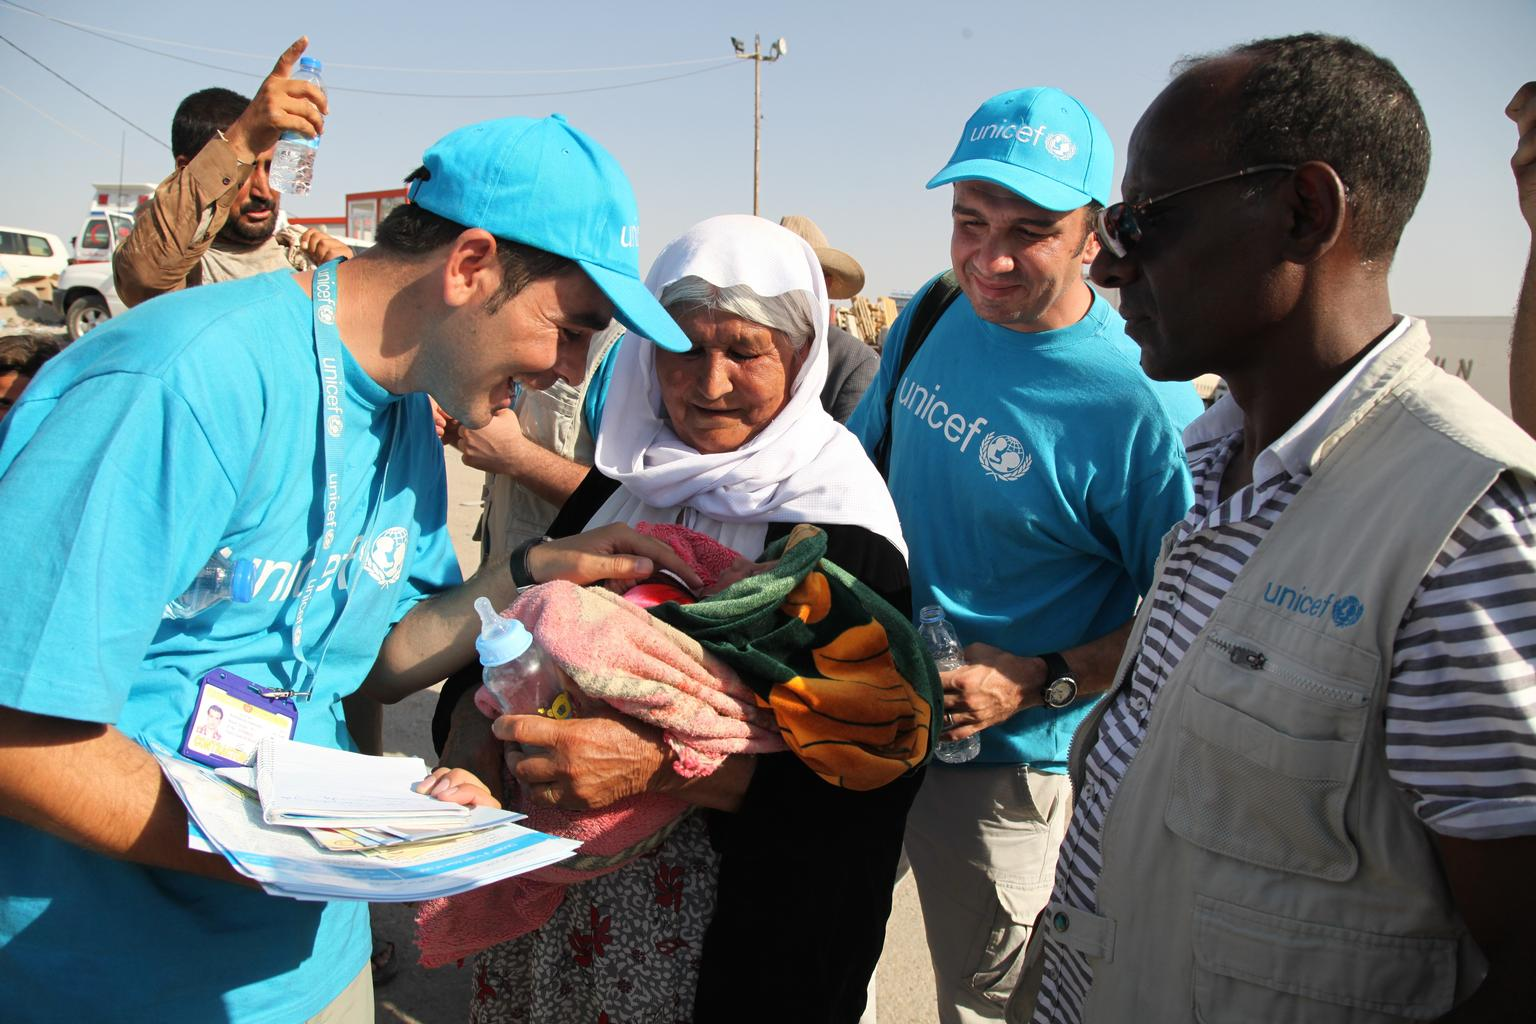 UNICEF workers interact with a 13-day-old Yazidi infant, held by an elderly woman, in the town of Peshkhabour in Dohuk Governorate.